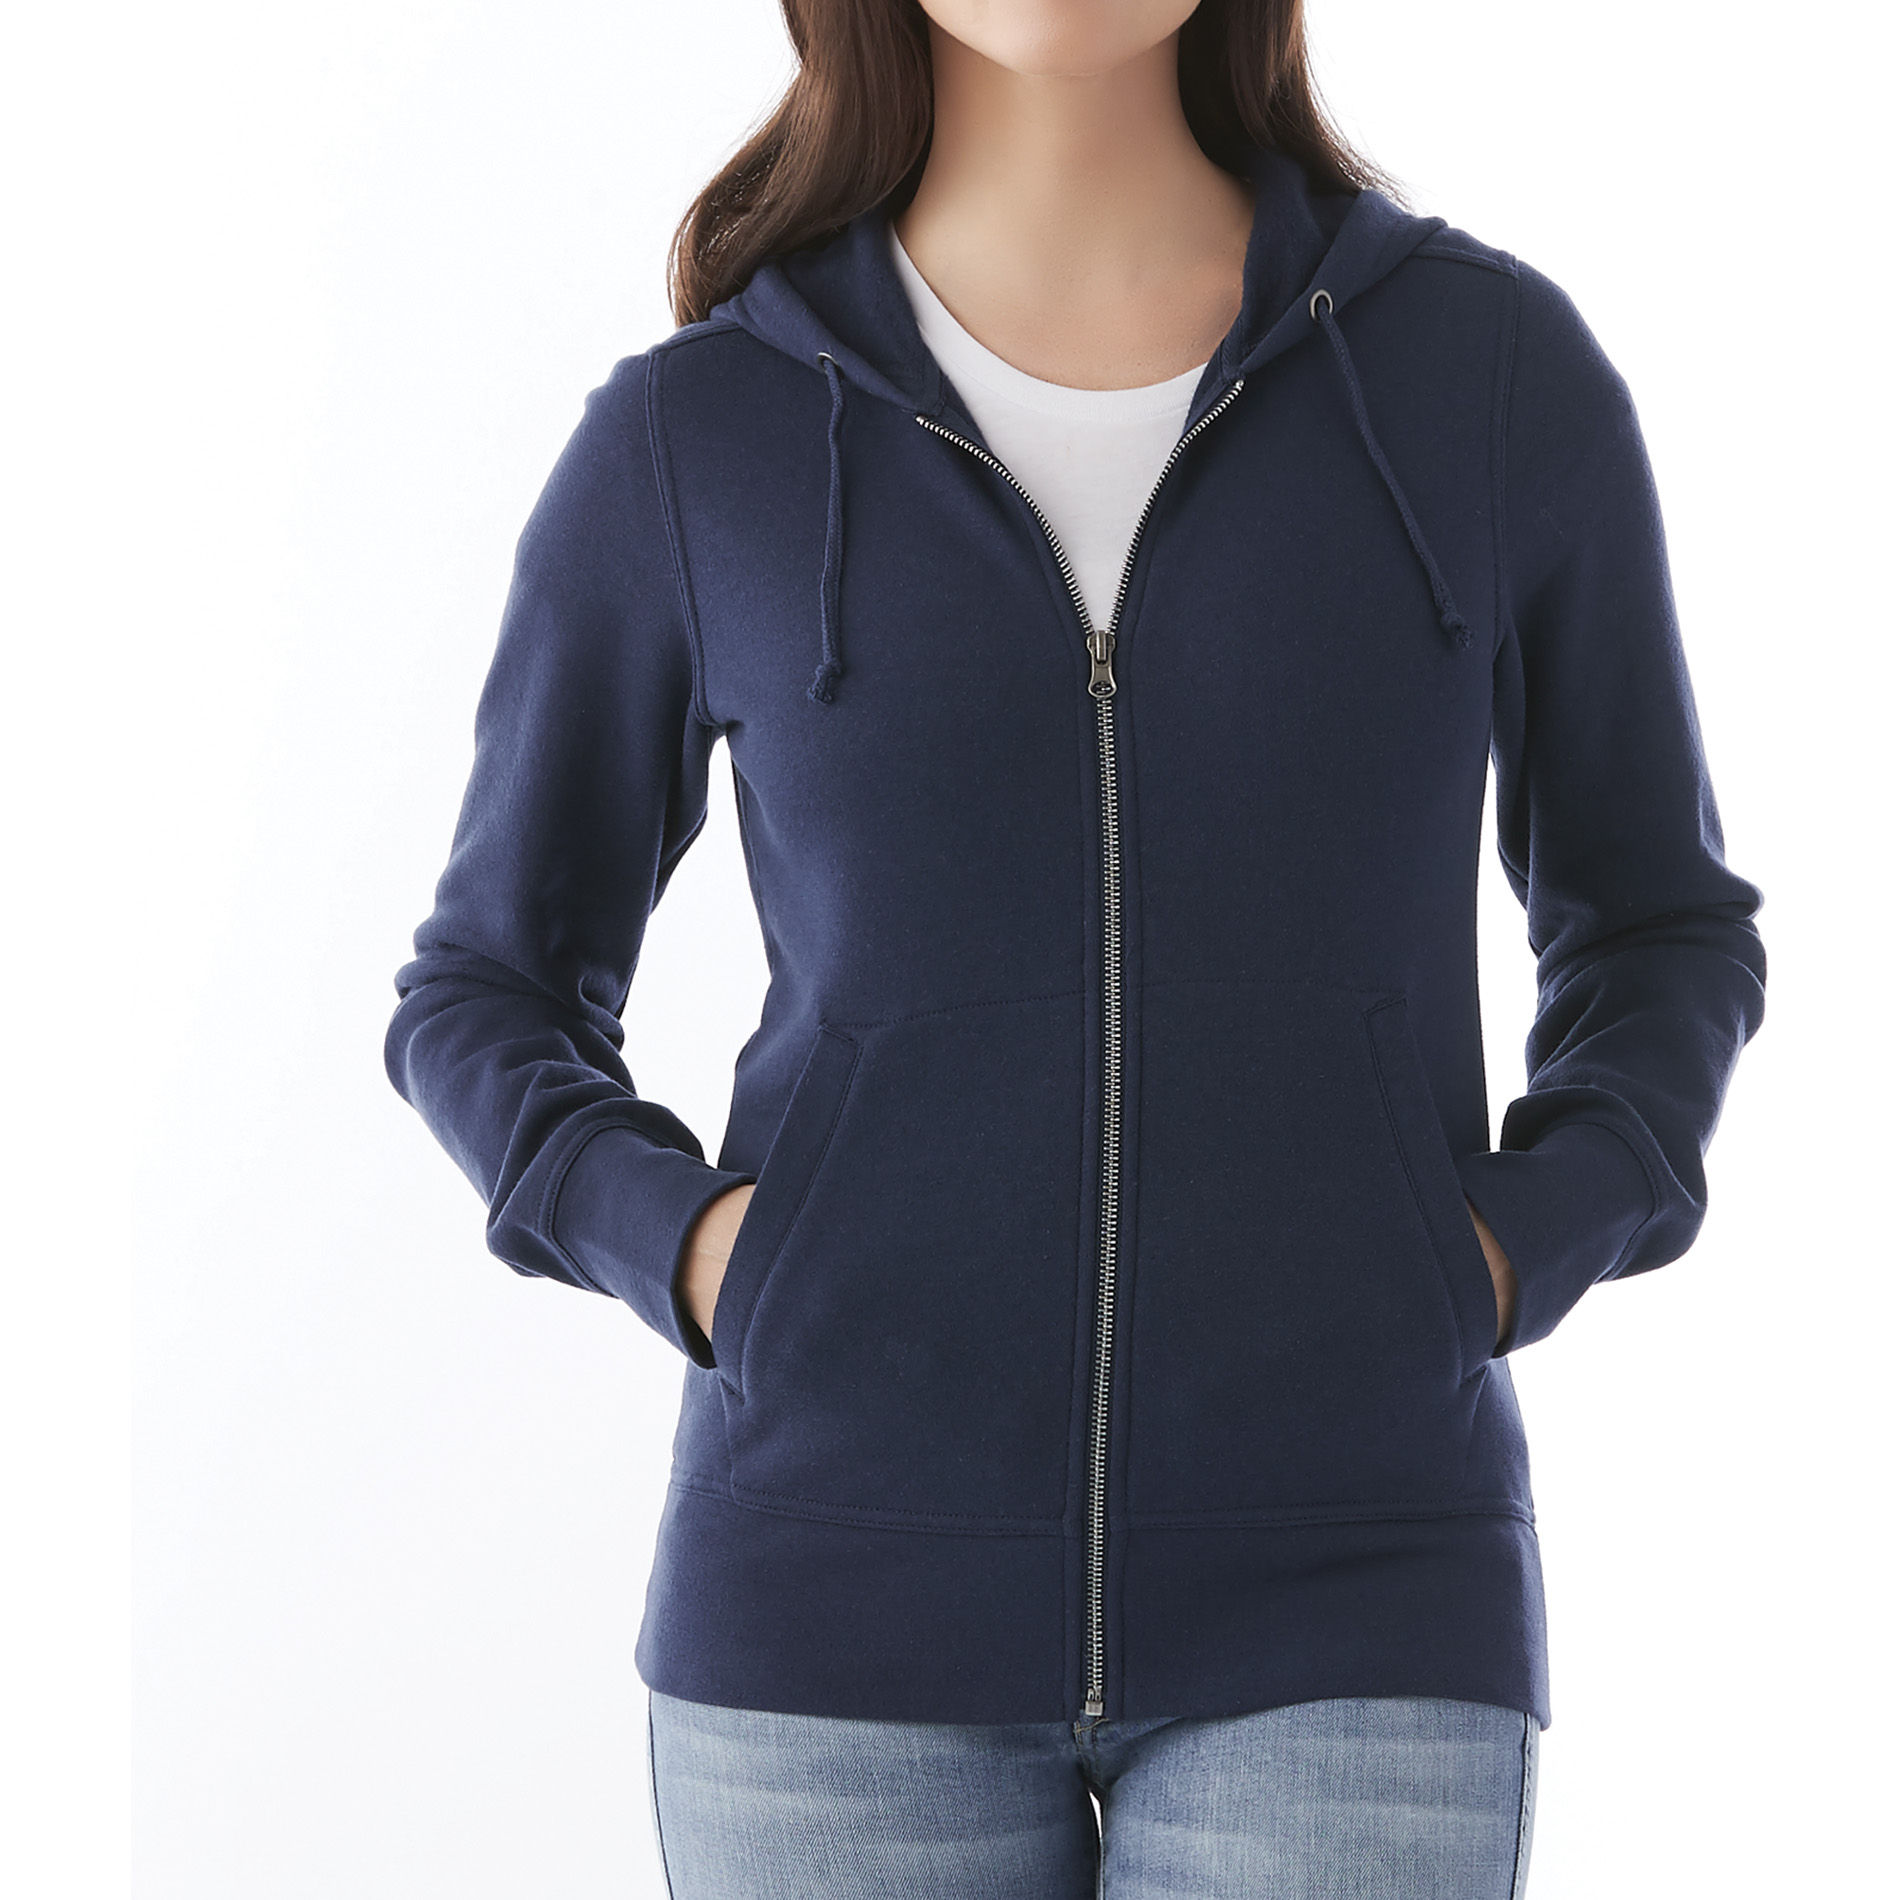 Elevate TM98135 - Women's CYPRESS Fleece Zip Hoodie